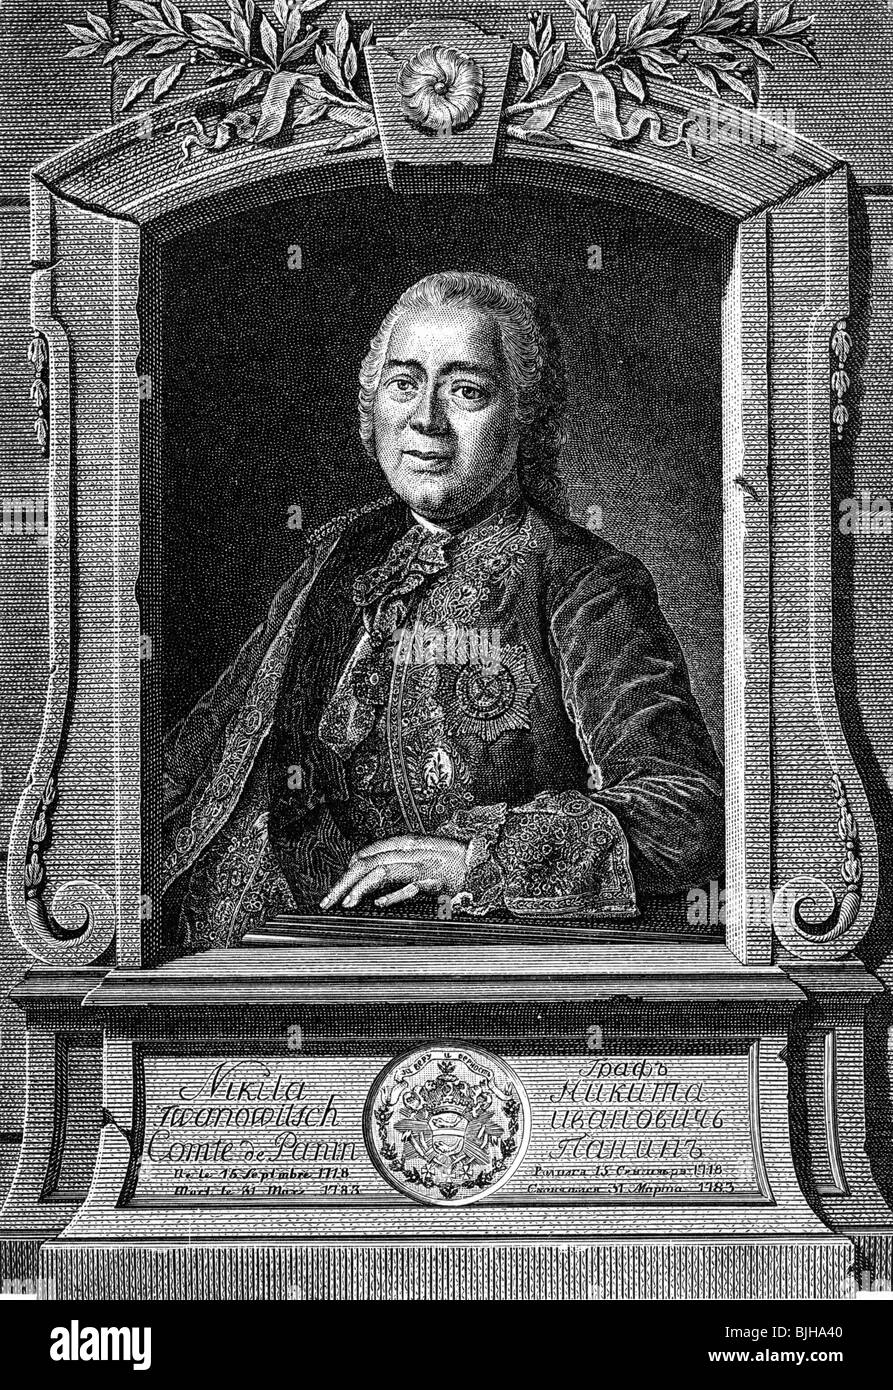 Panin, Nikita Ivanovich, 26.9.1718 - 20.3.1783, Russian politician, Minister of Foreign Affairs 1764 - 1780, half - Stock Image